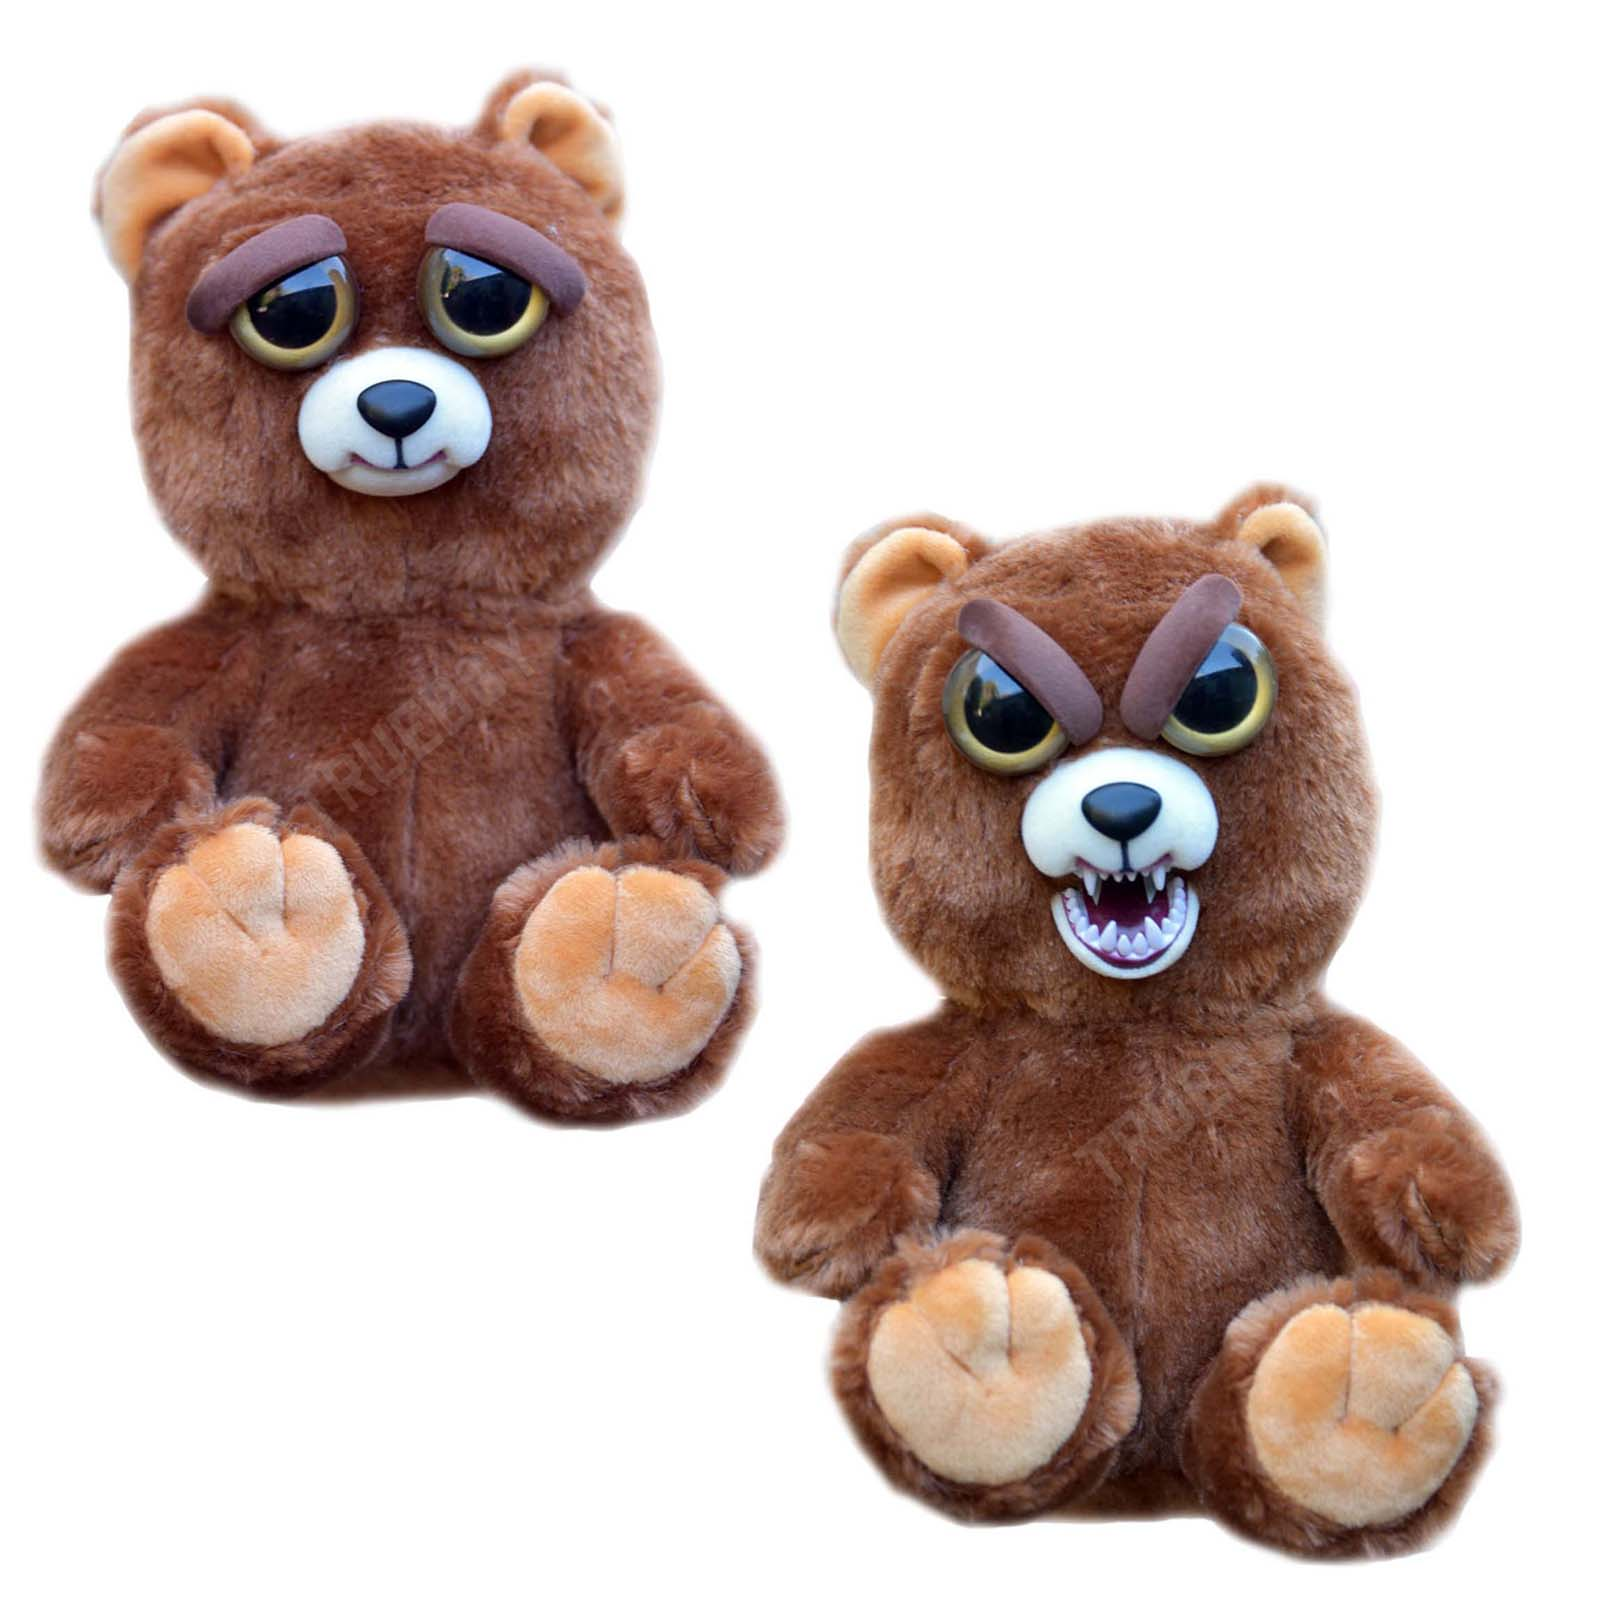 Stuffed Animal Toys : Feisty pets soft plush stuffed scary face must have toy